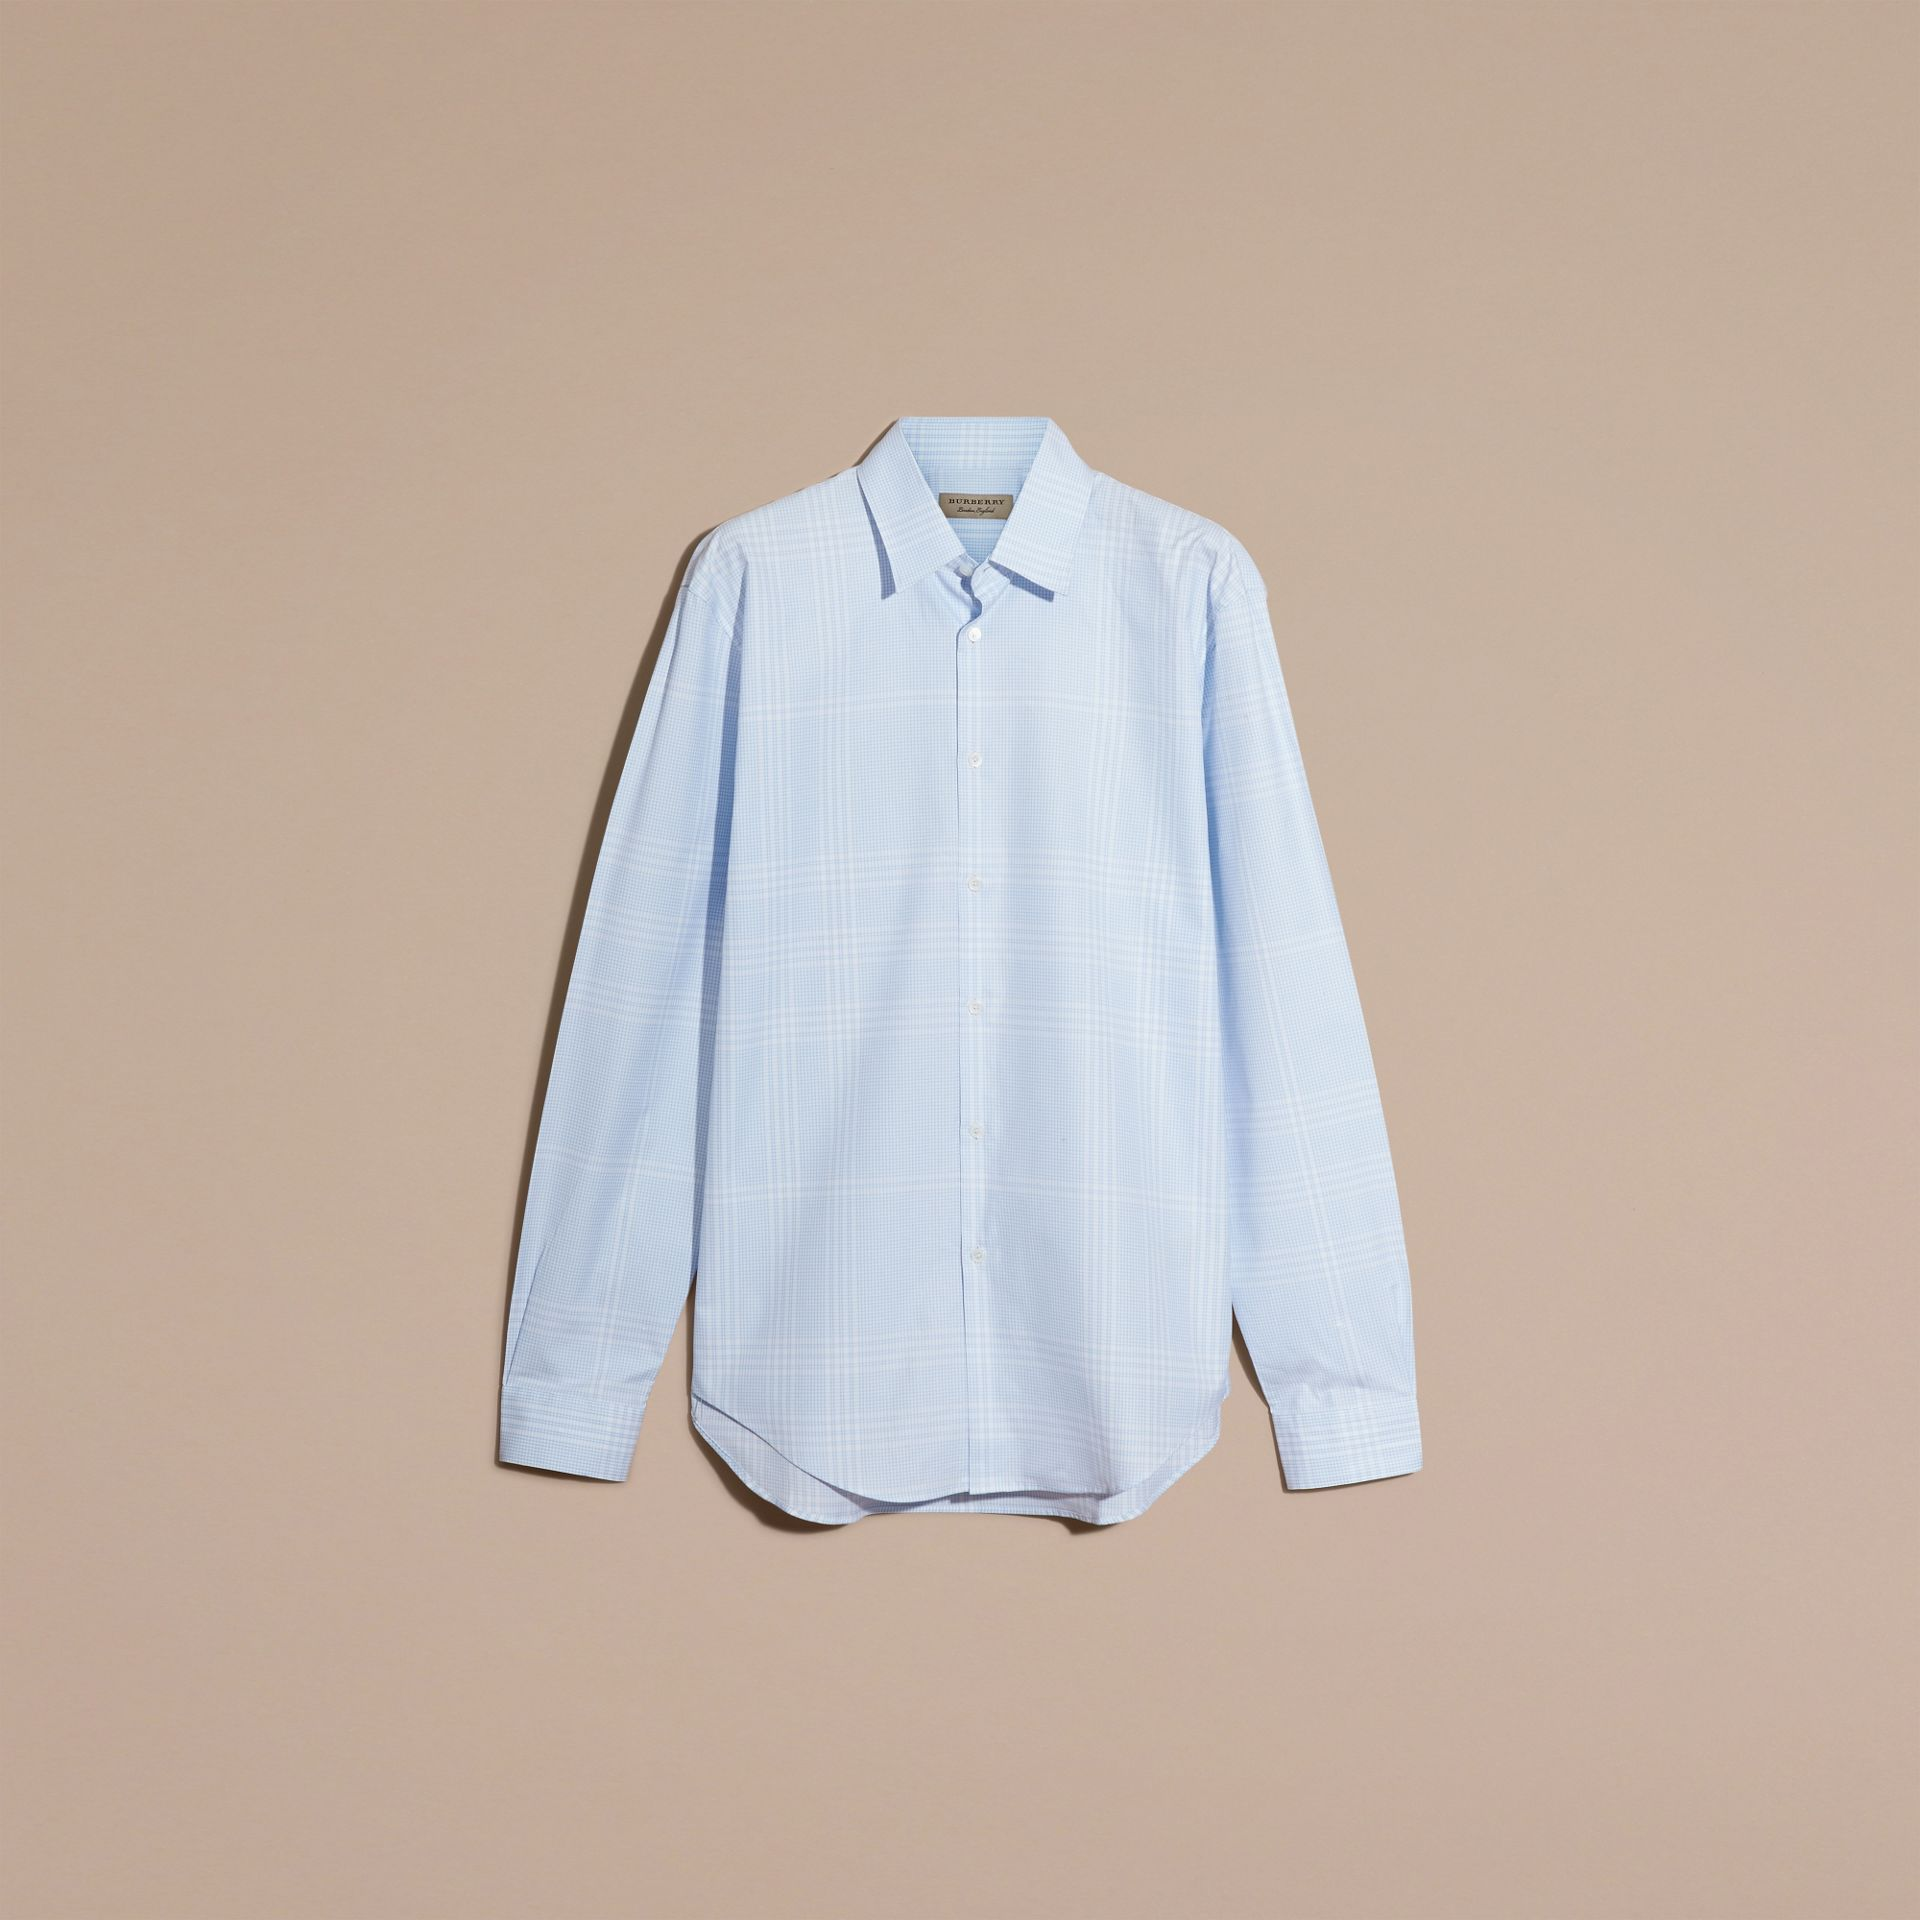 City blue Check Cotton Shirt City Blue - gallery image 4